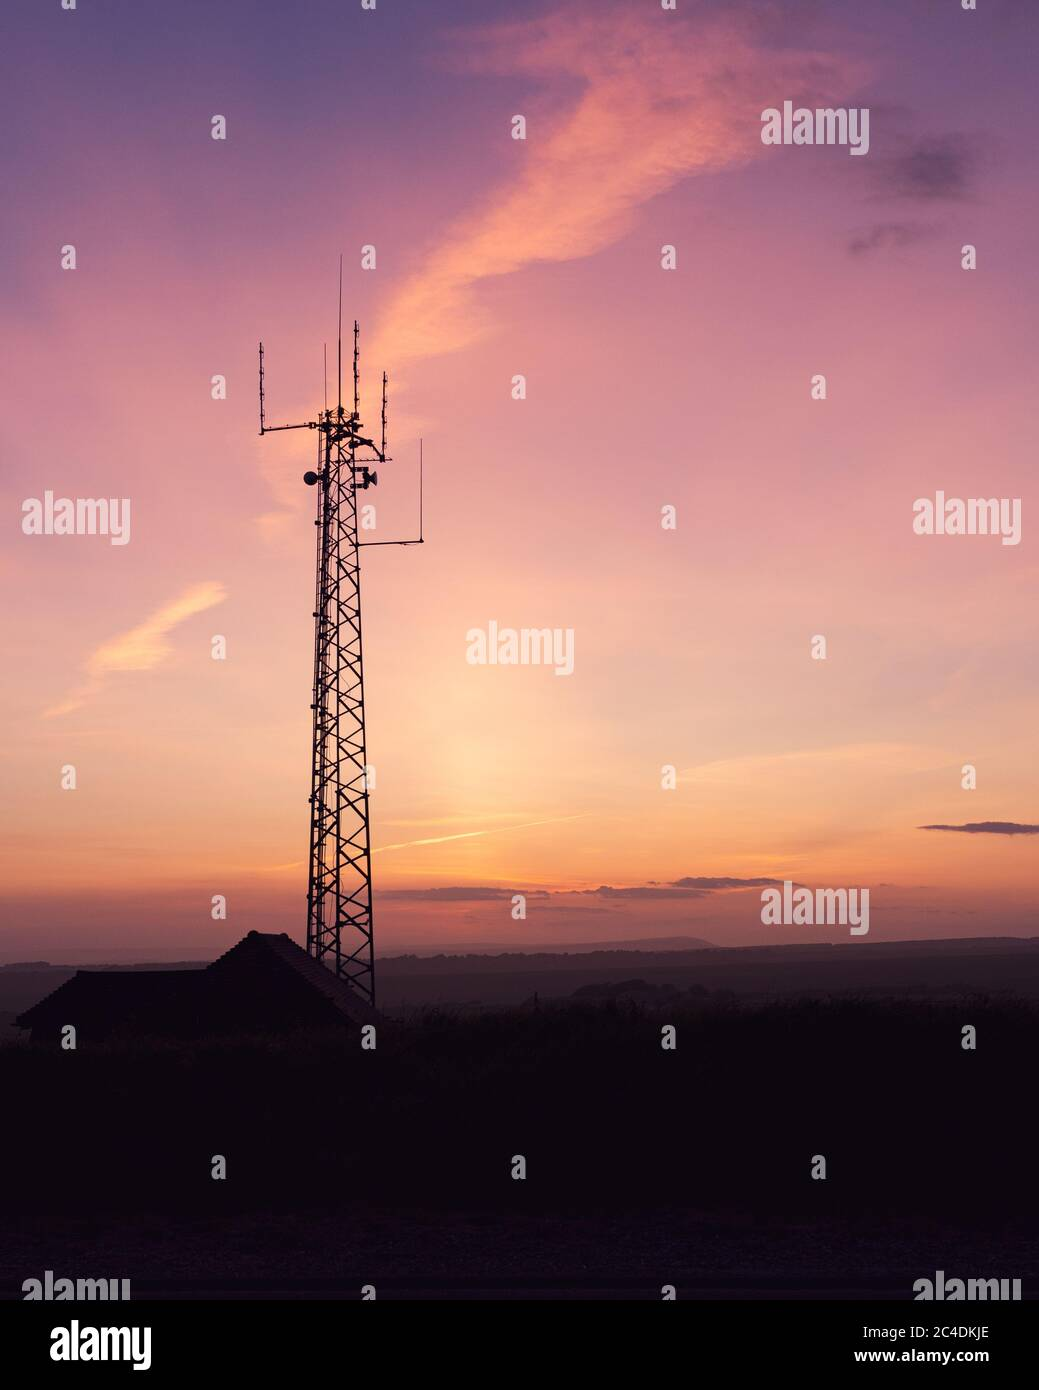 Vertical Shot Of A Telecom Tower In A Field Under The Breathtaking Sky Perfect For Wallpaper Stock Photo Alamy